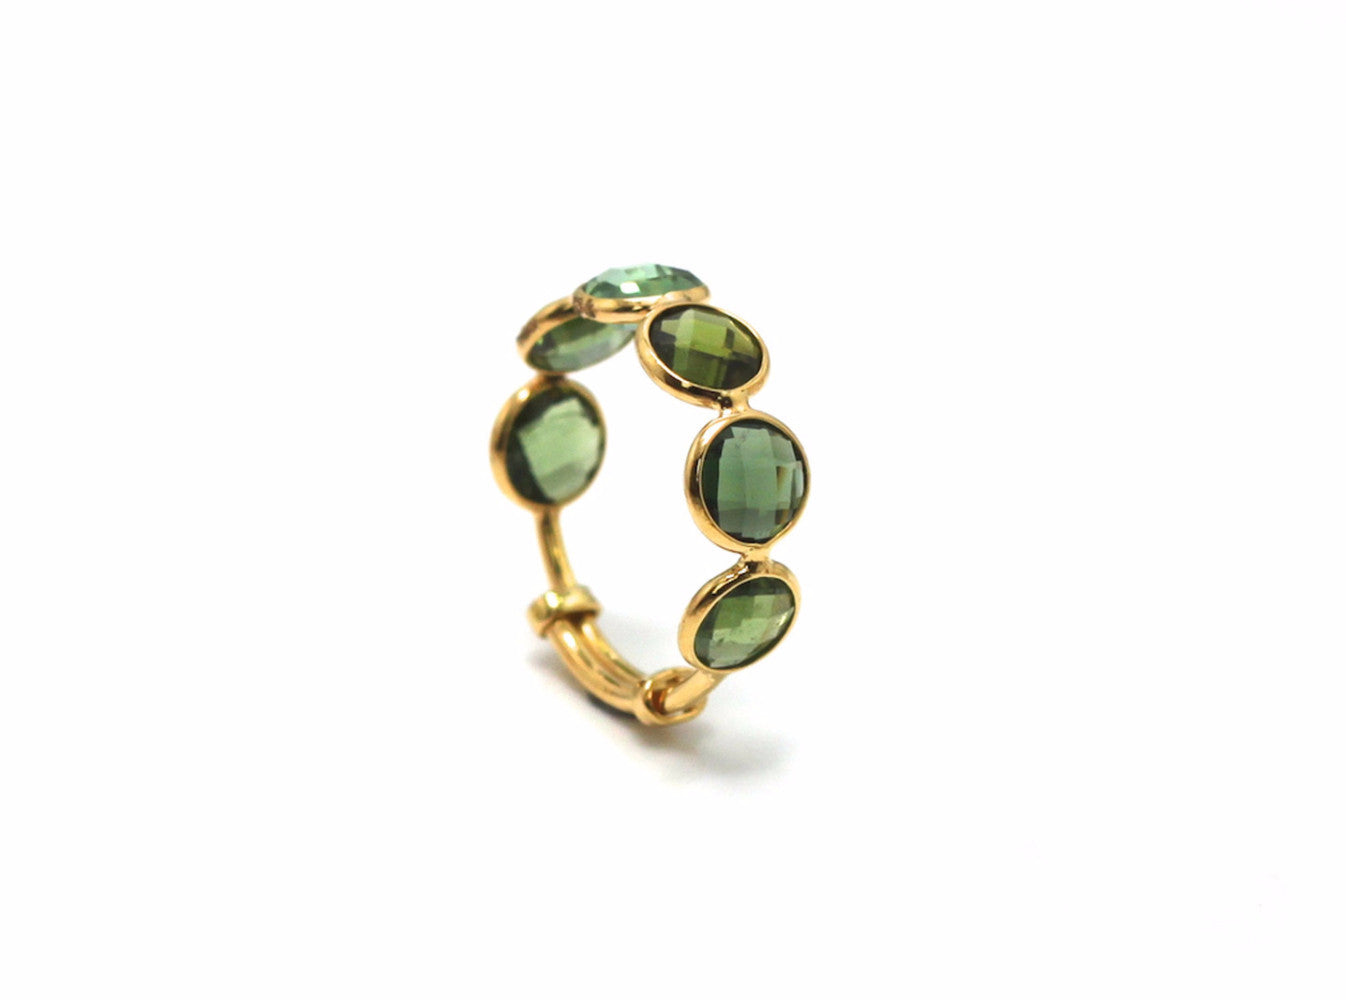 Green Tourmaline Ring Band in 18k Yellow Gold